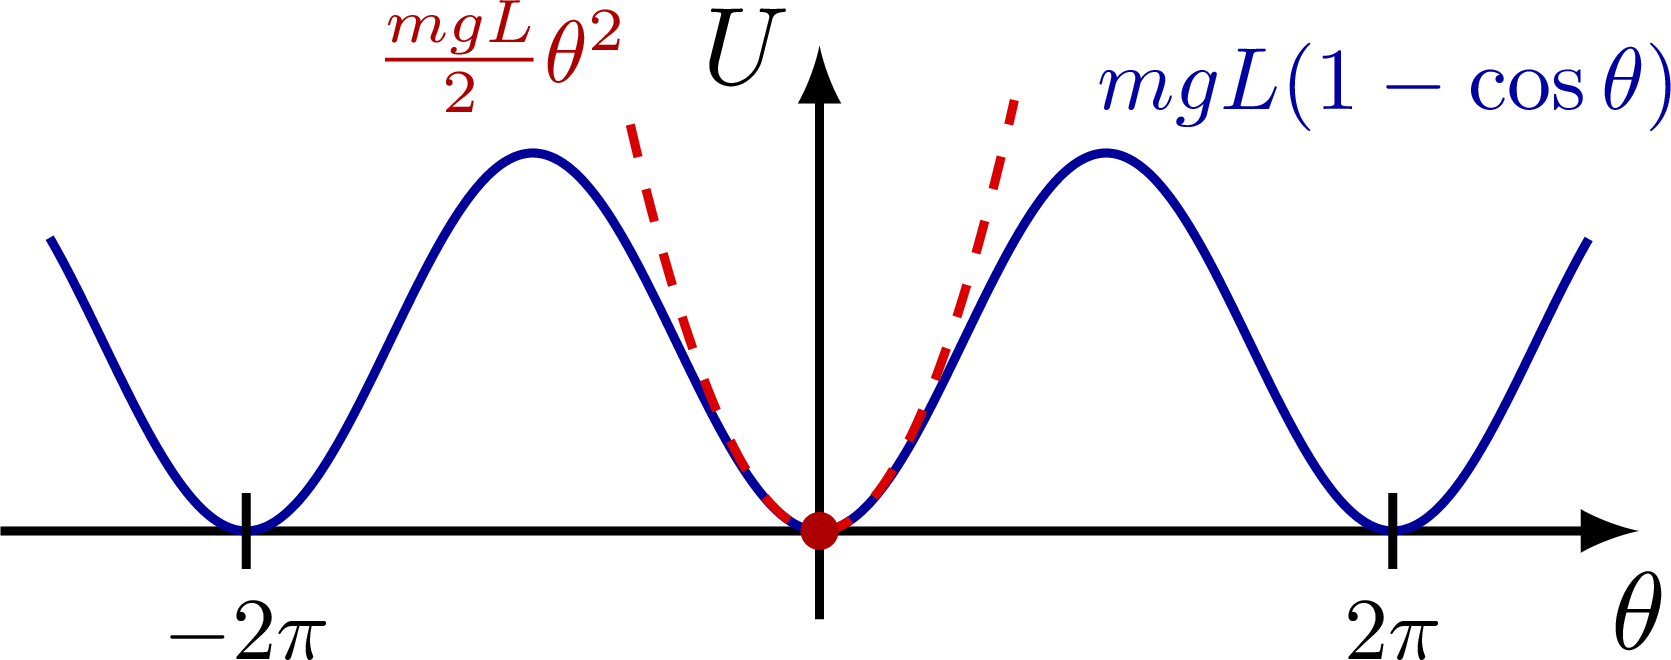 dynamics_oscillator_approximation-002.png